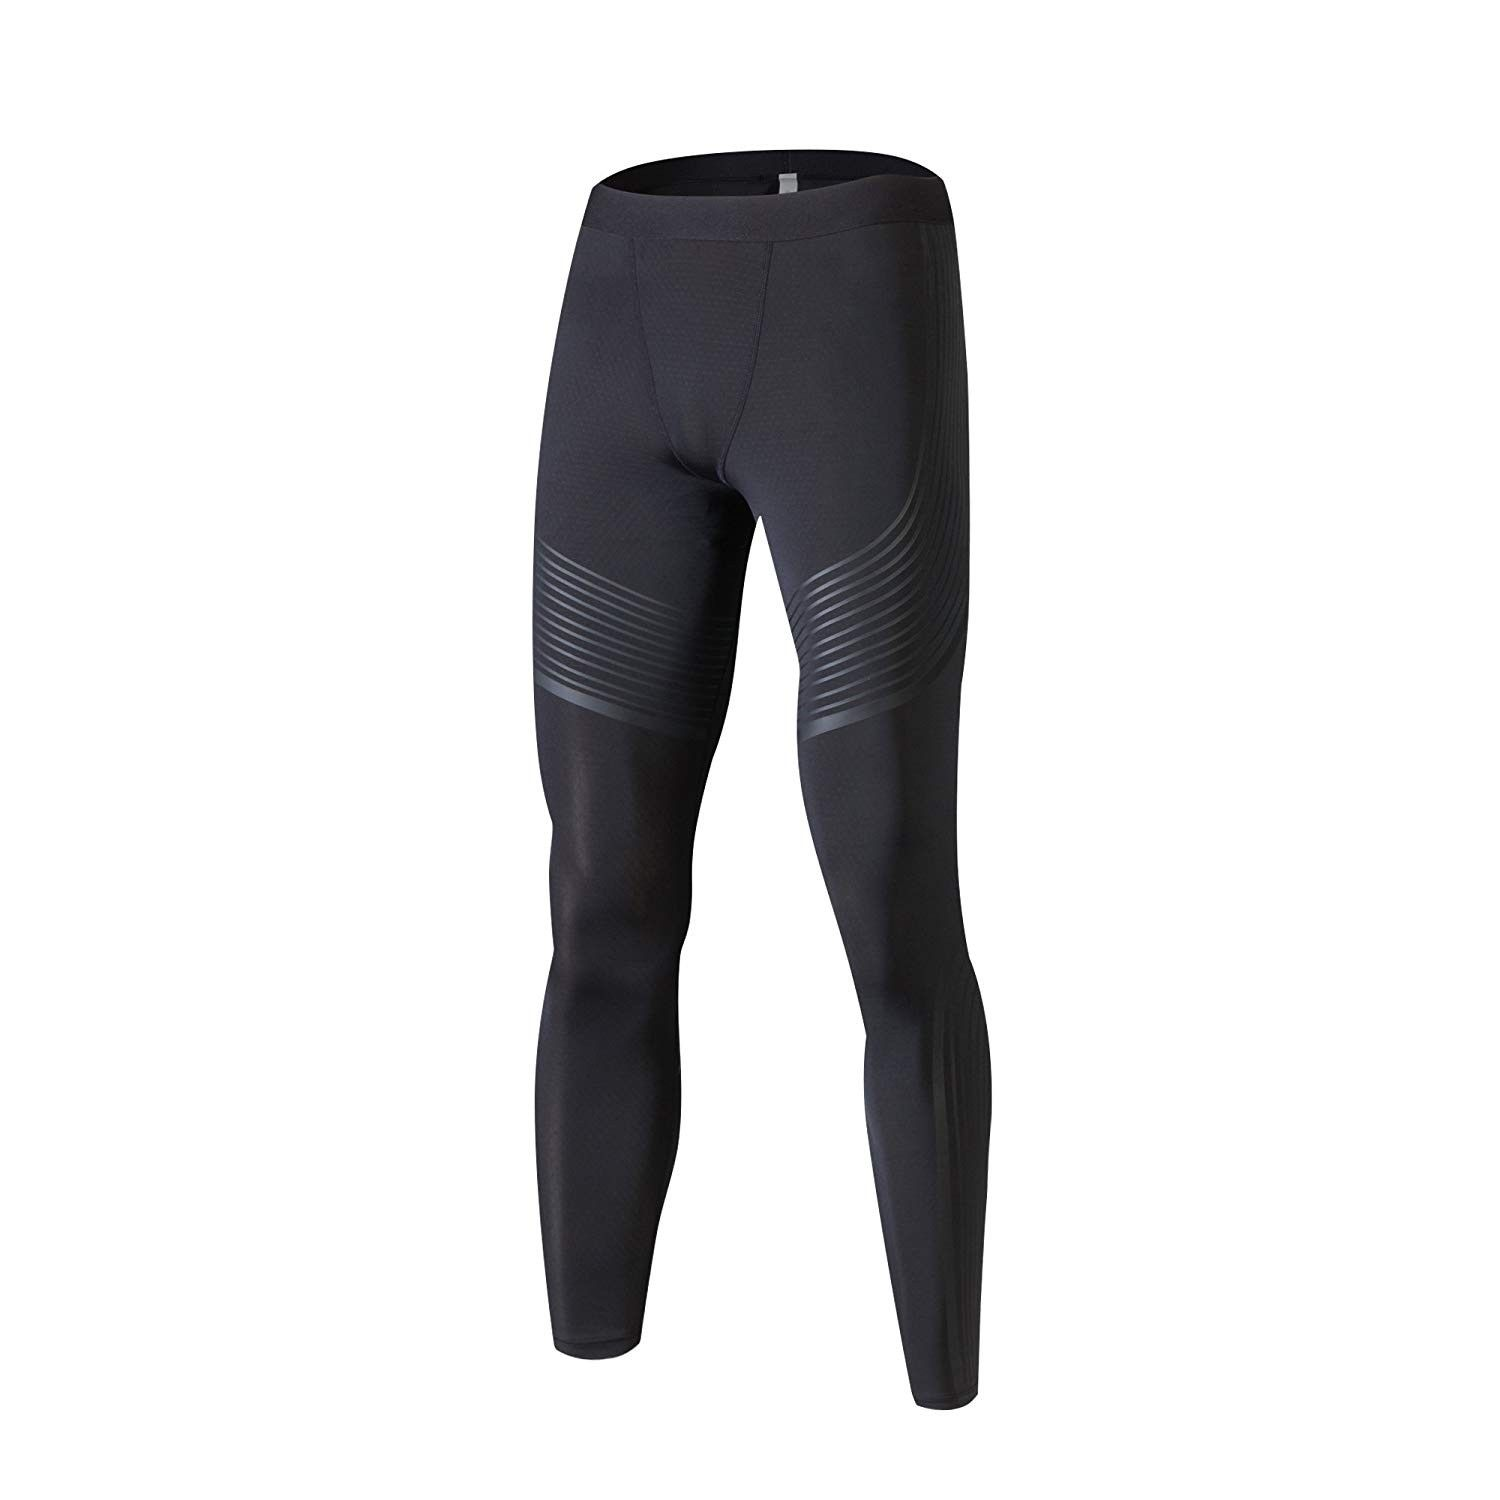 WSHINE Mens Compression Shorts Basketball Fitness Running Pants Tight Base Layer